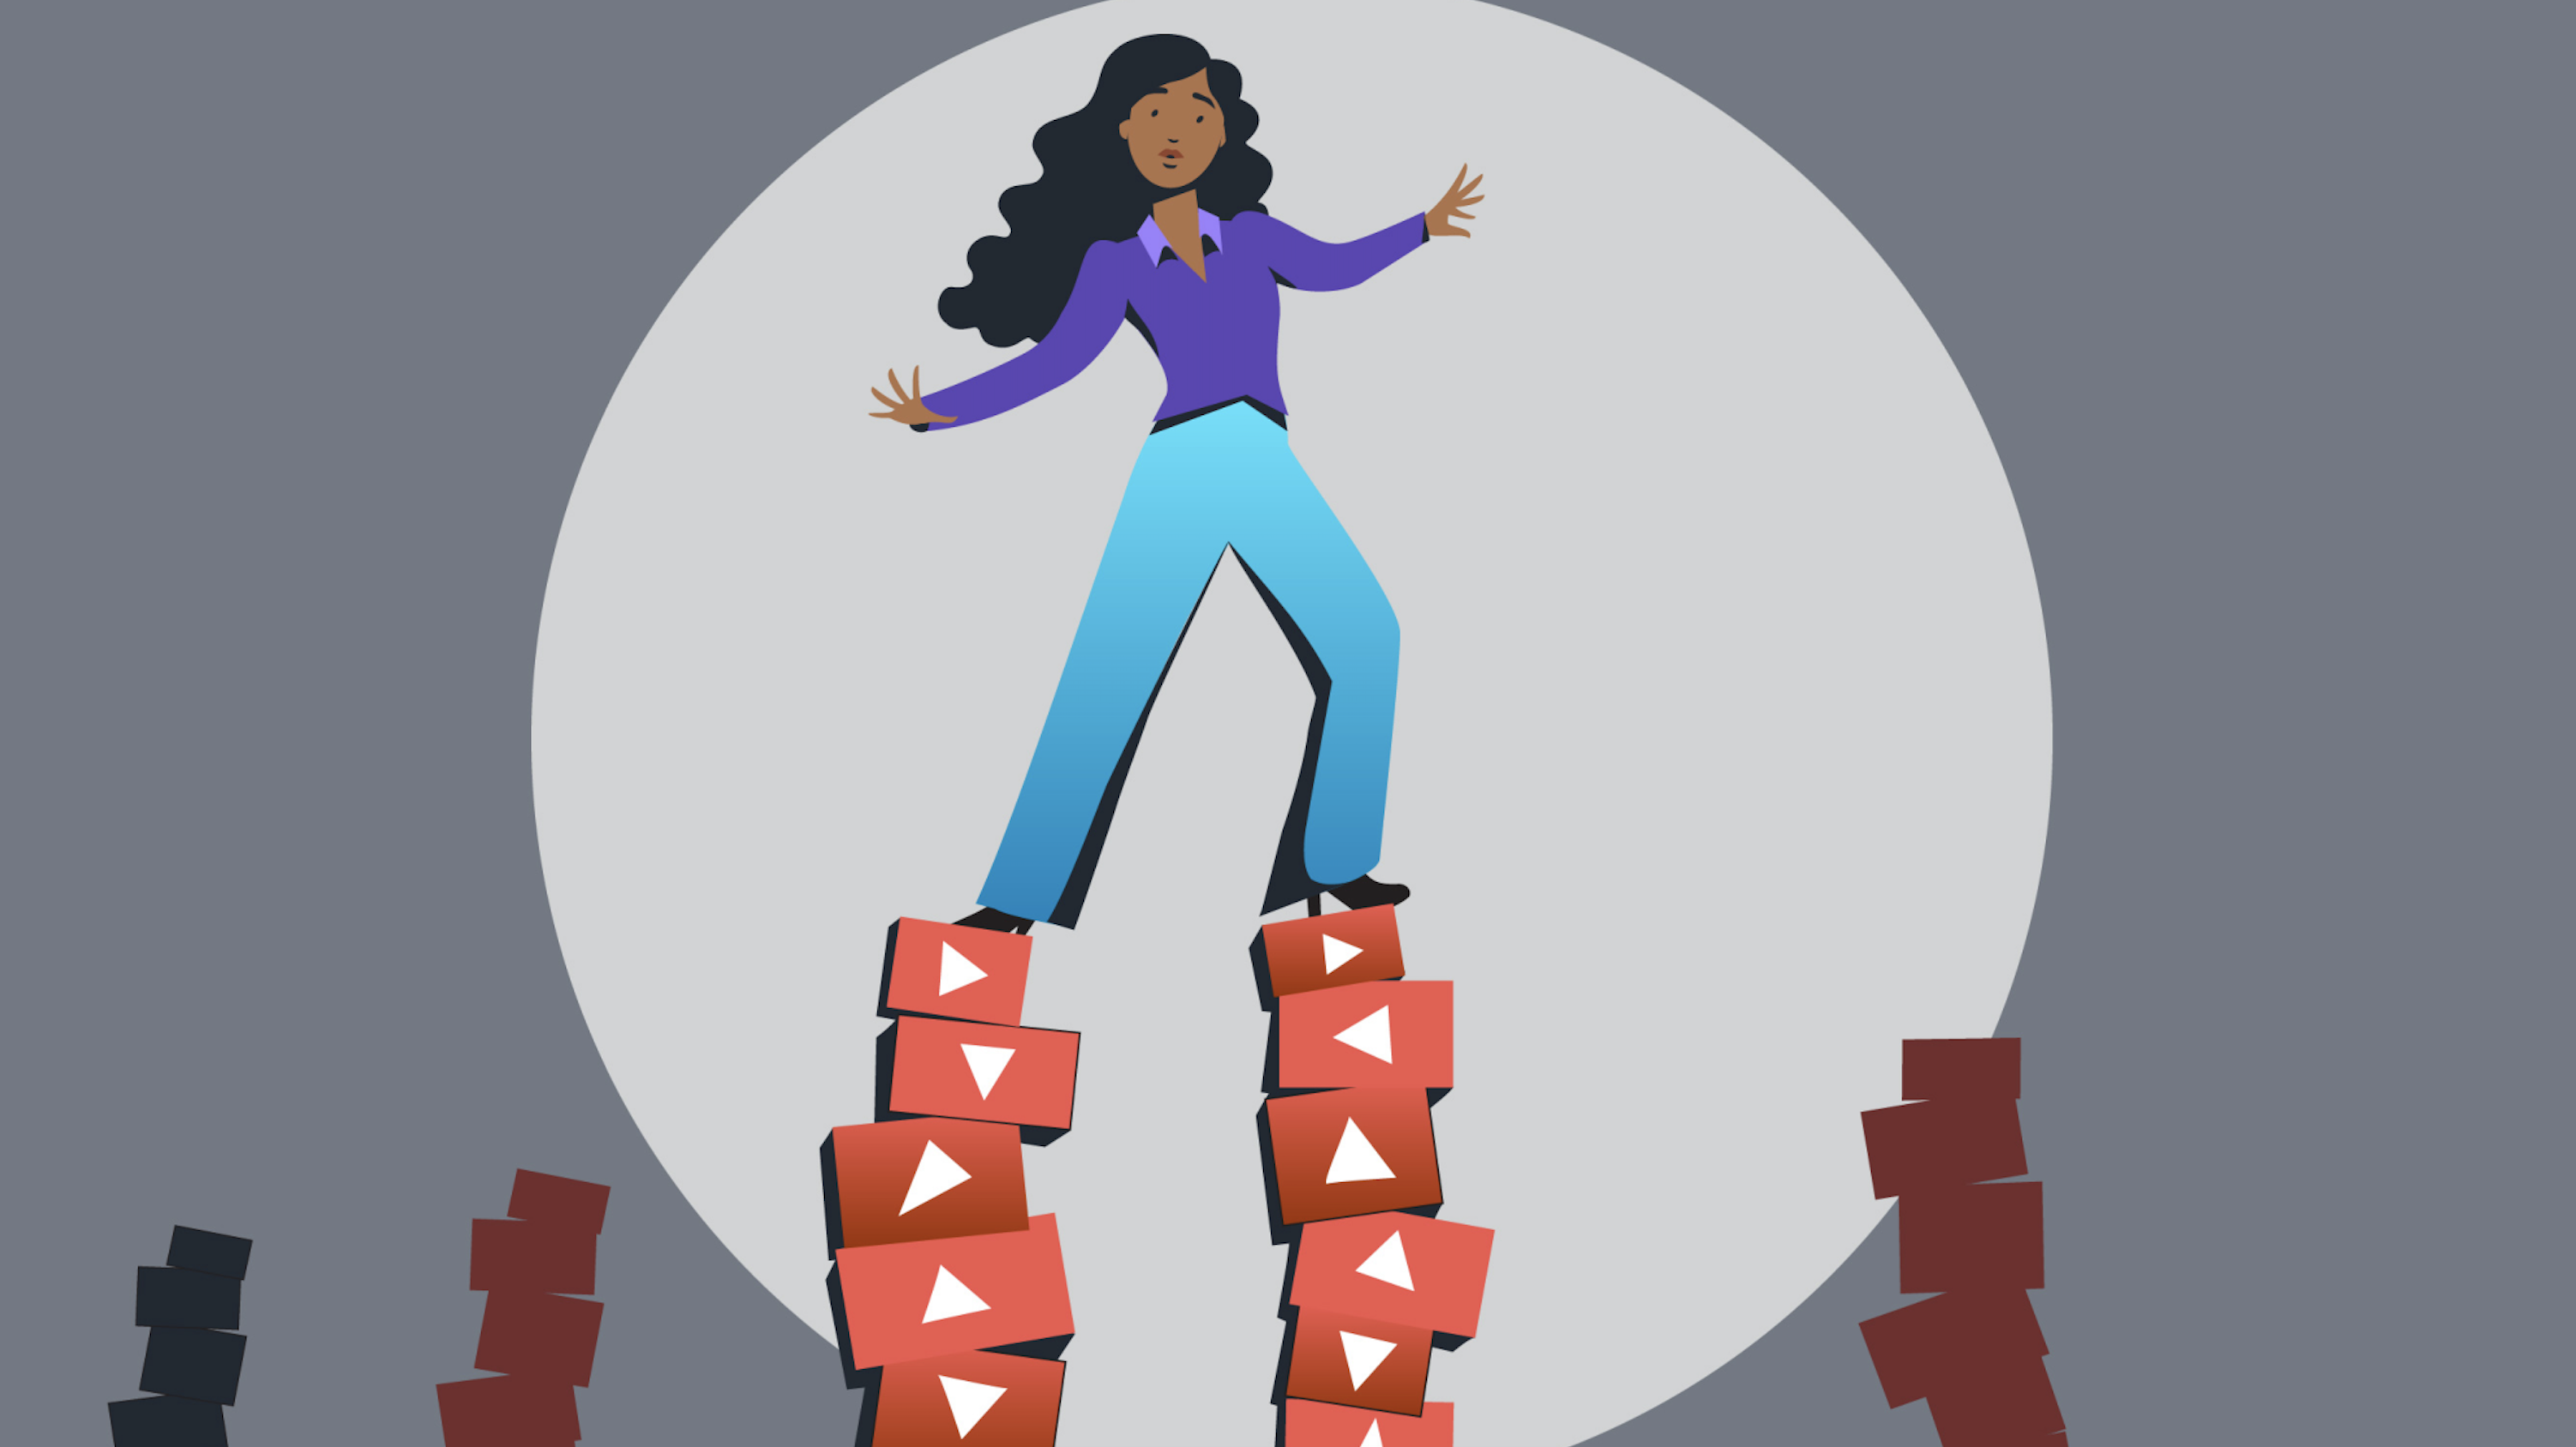 Illustration of a person teetering on blocks with the YouTube logo